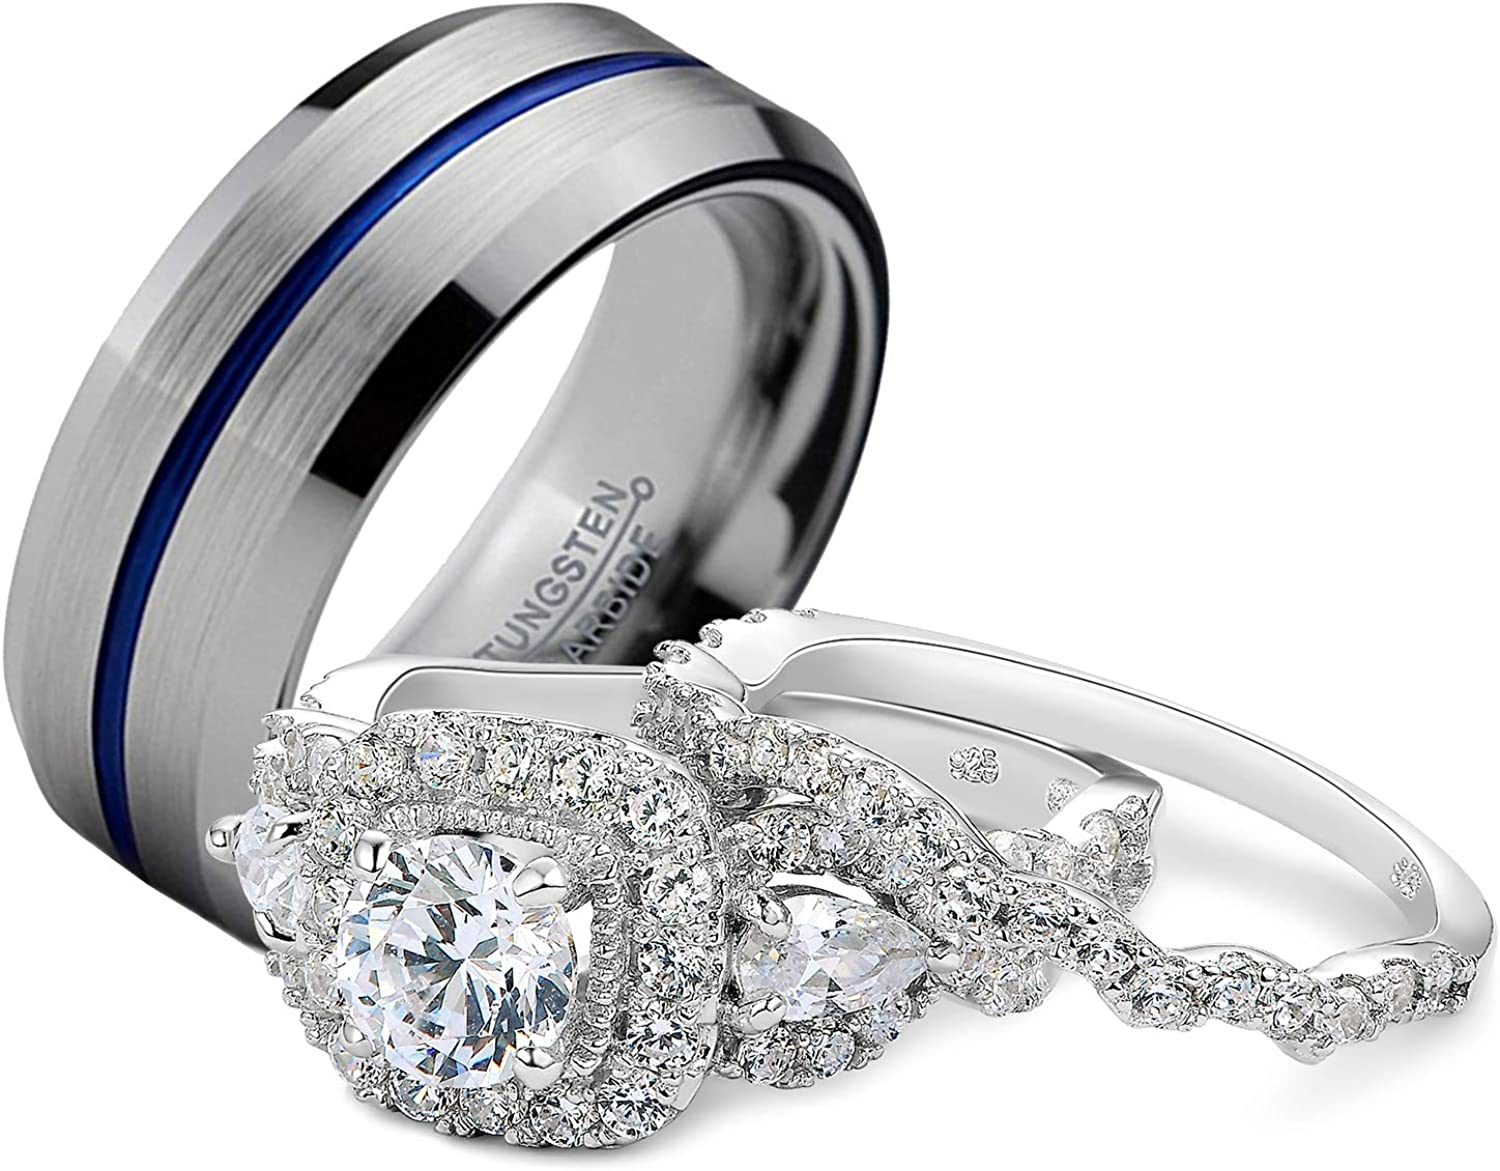 It is just an image of Newshe Wedding Rings Set for Him and Her Women Men Tungsten Bands Sterling Silver Blue Line Cz 35-35